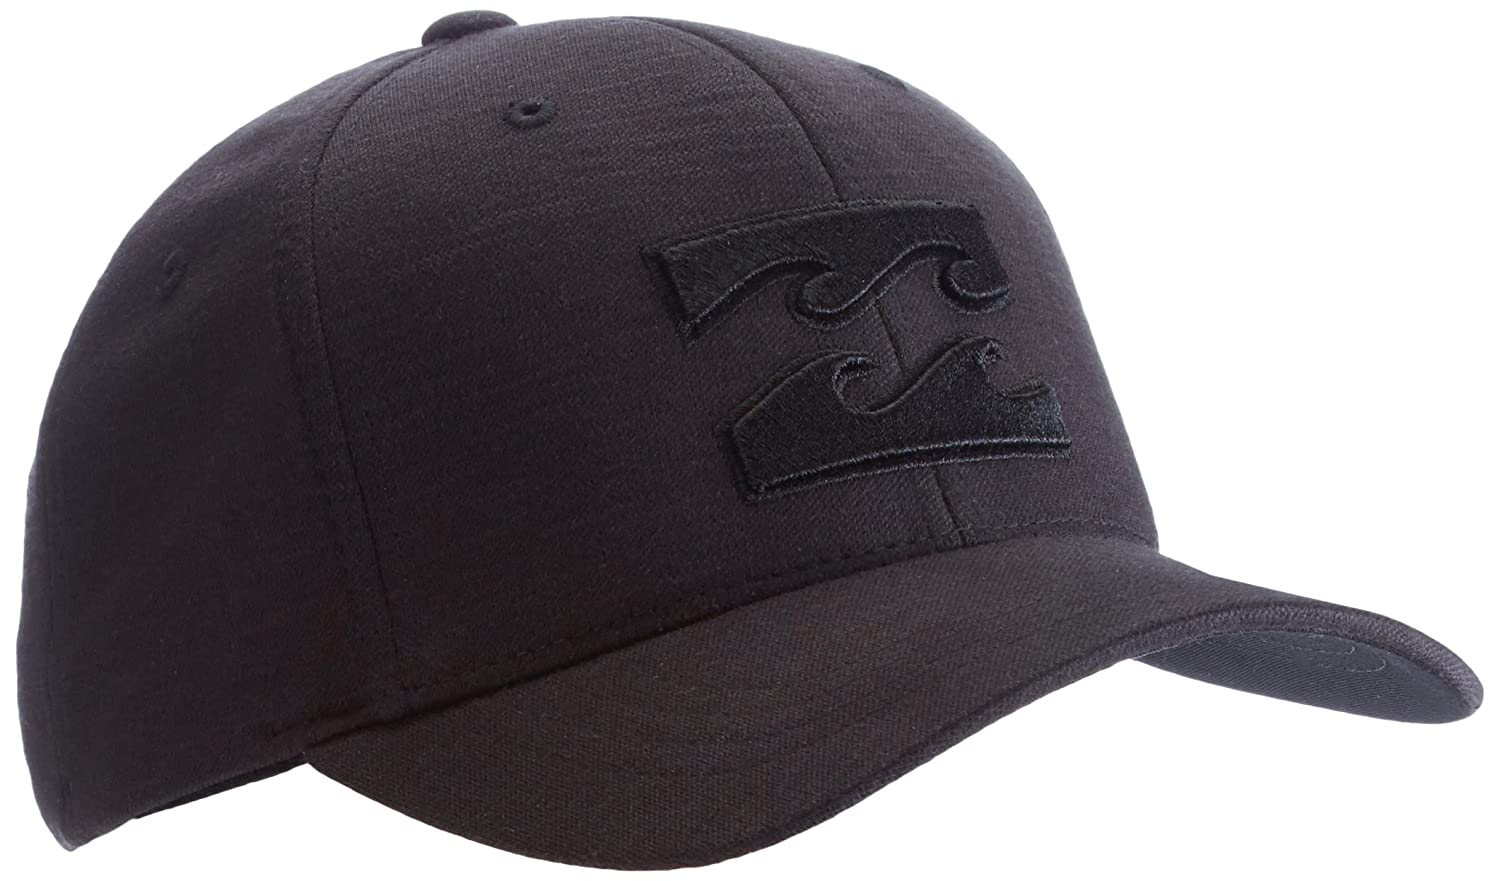 Billabong All Day Flexfit - Gorras para Hombre, Color Stealth, Talla única: Amazon.es: Zapatos y complementos